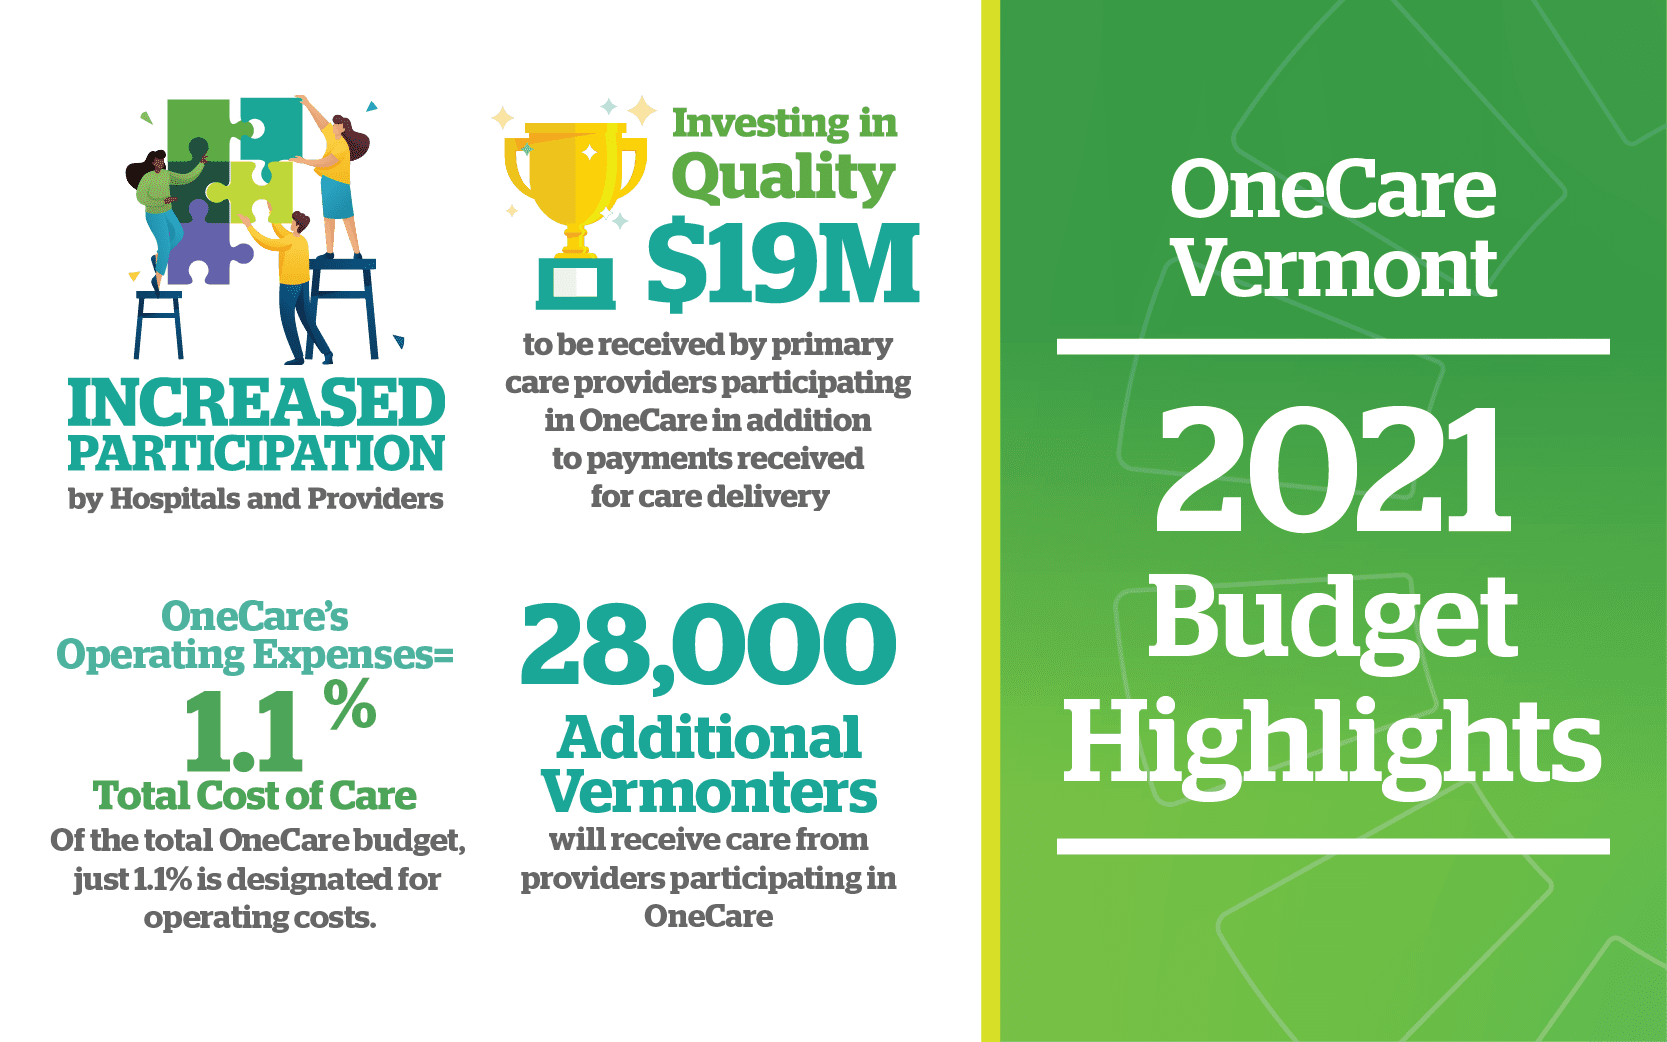 Graphic displaying four highlights of the 2021 OneCare budget submission